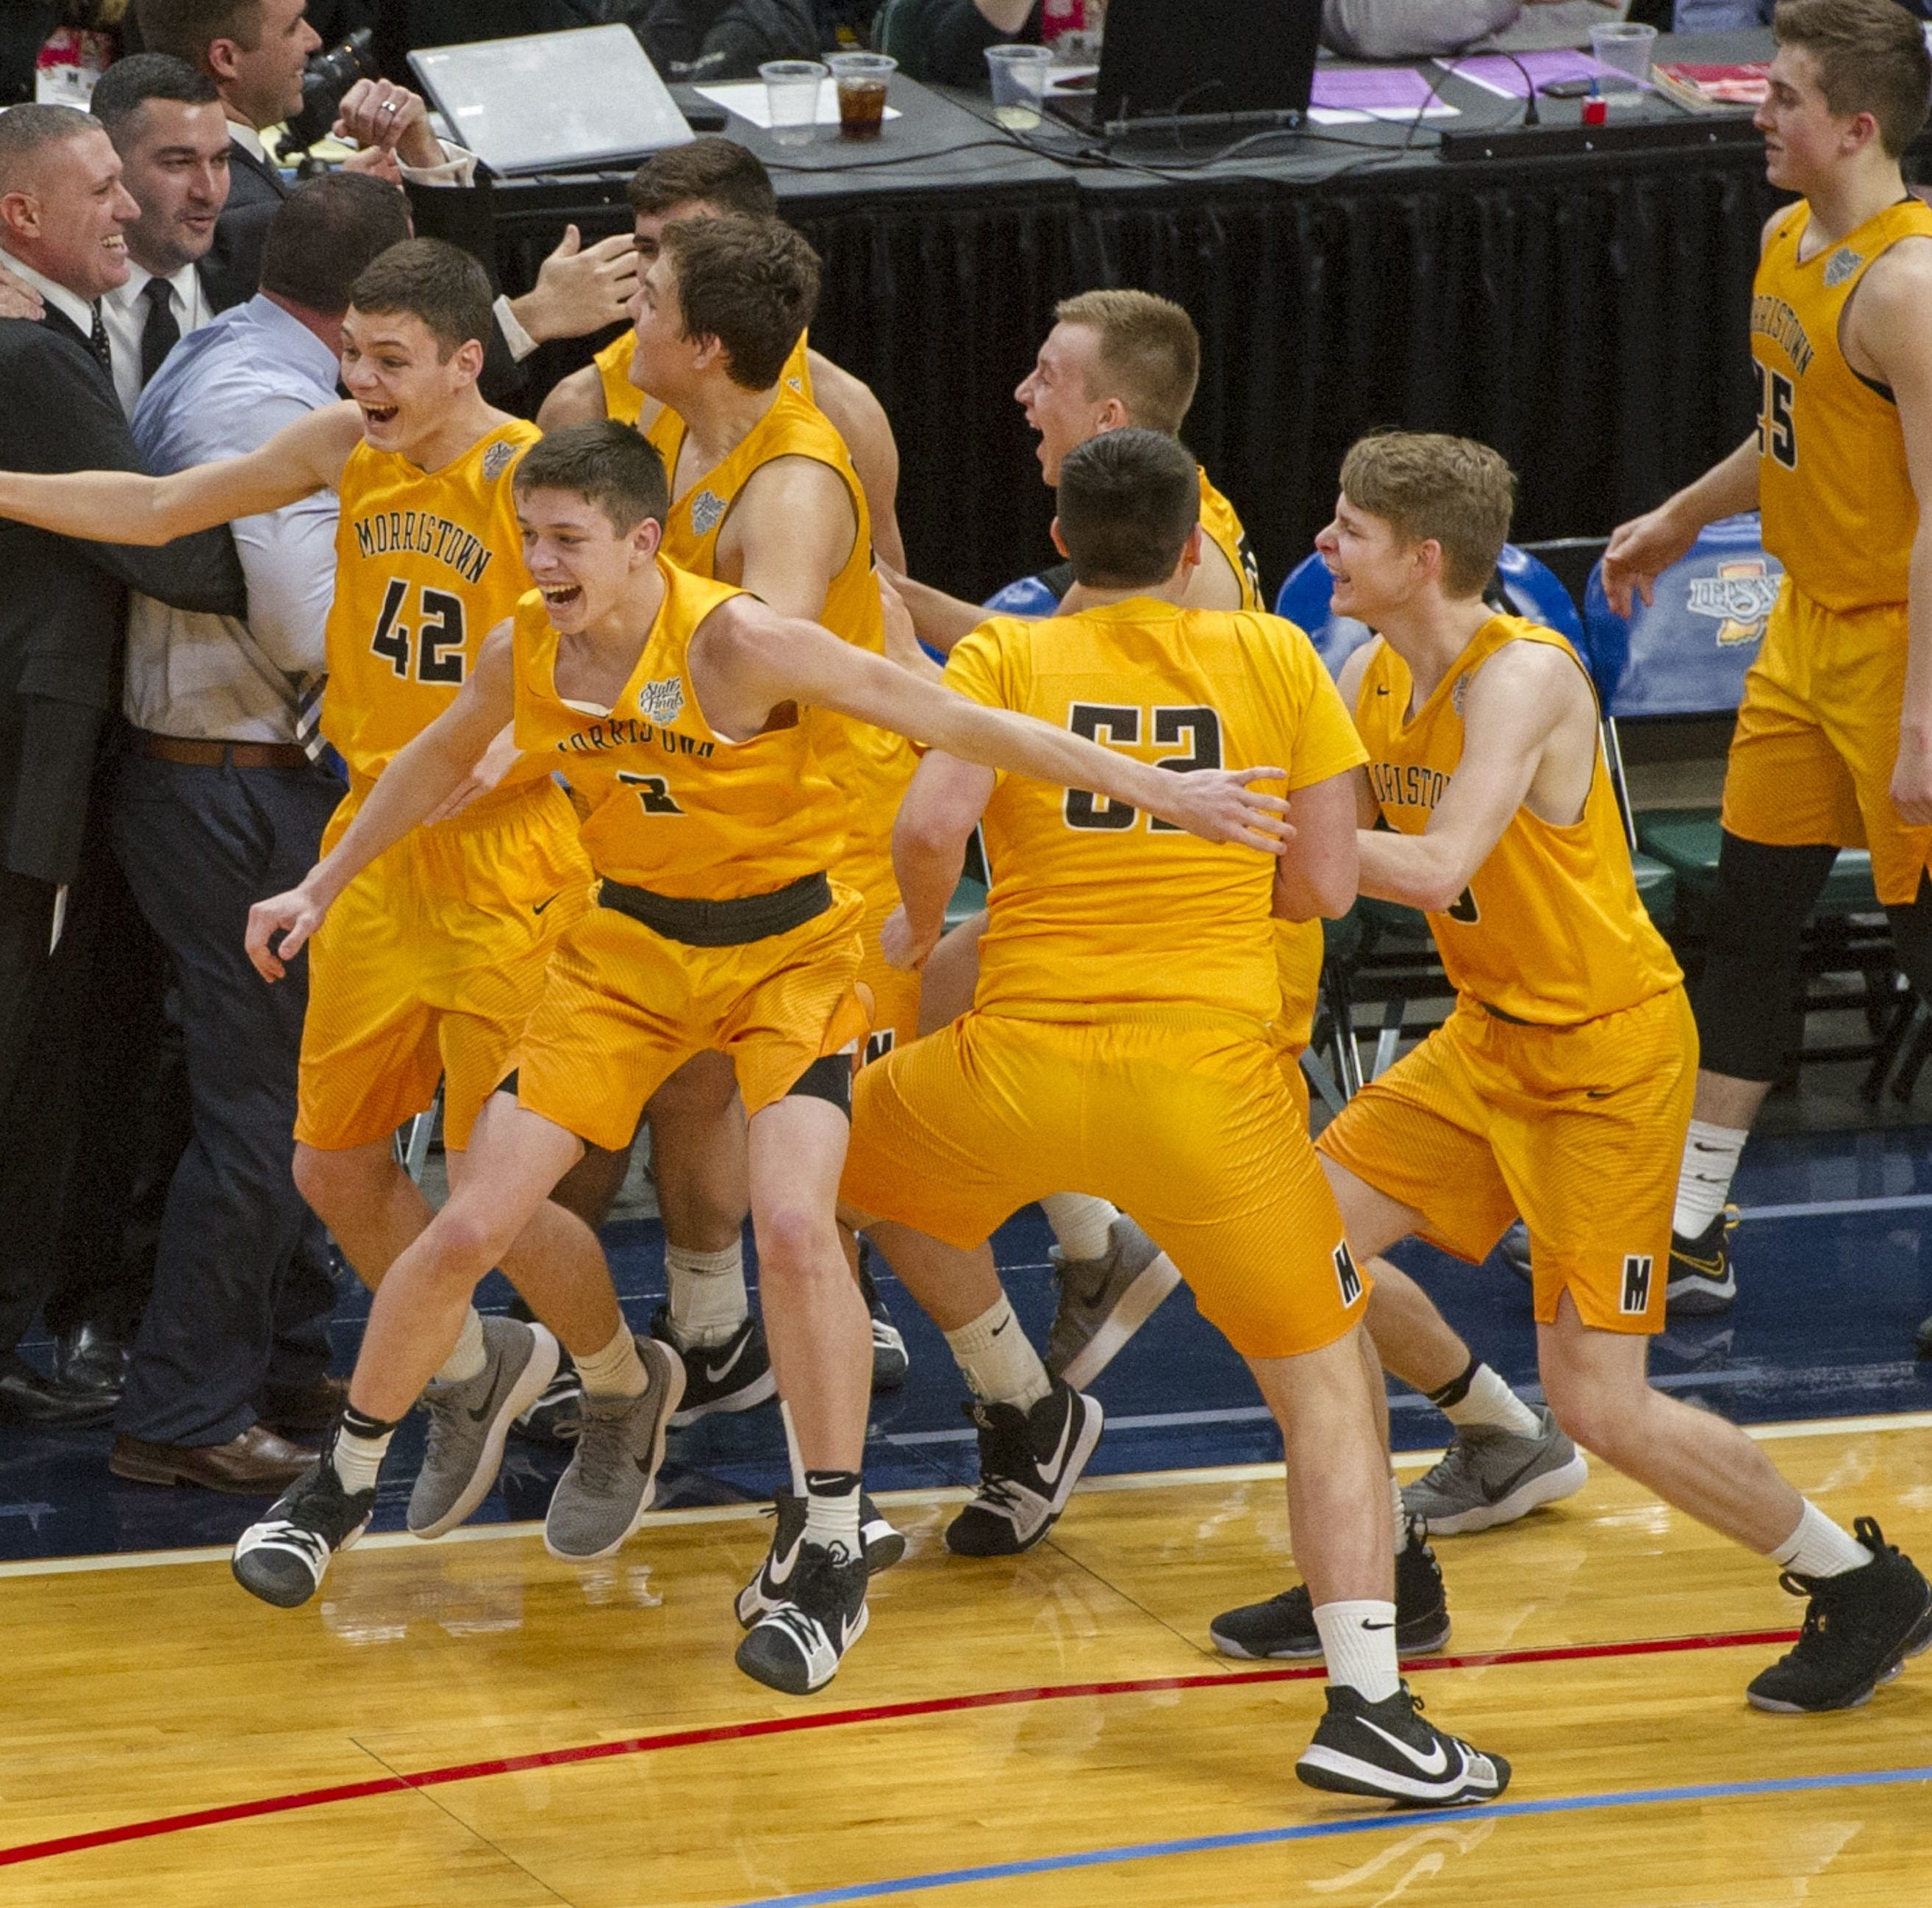 IHSAA basketball sectional draw live blog: Pairings to be revealed today